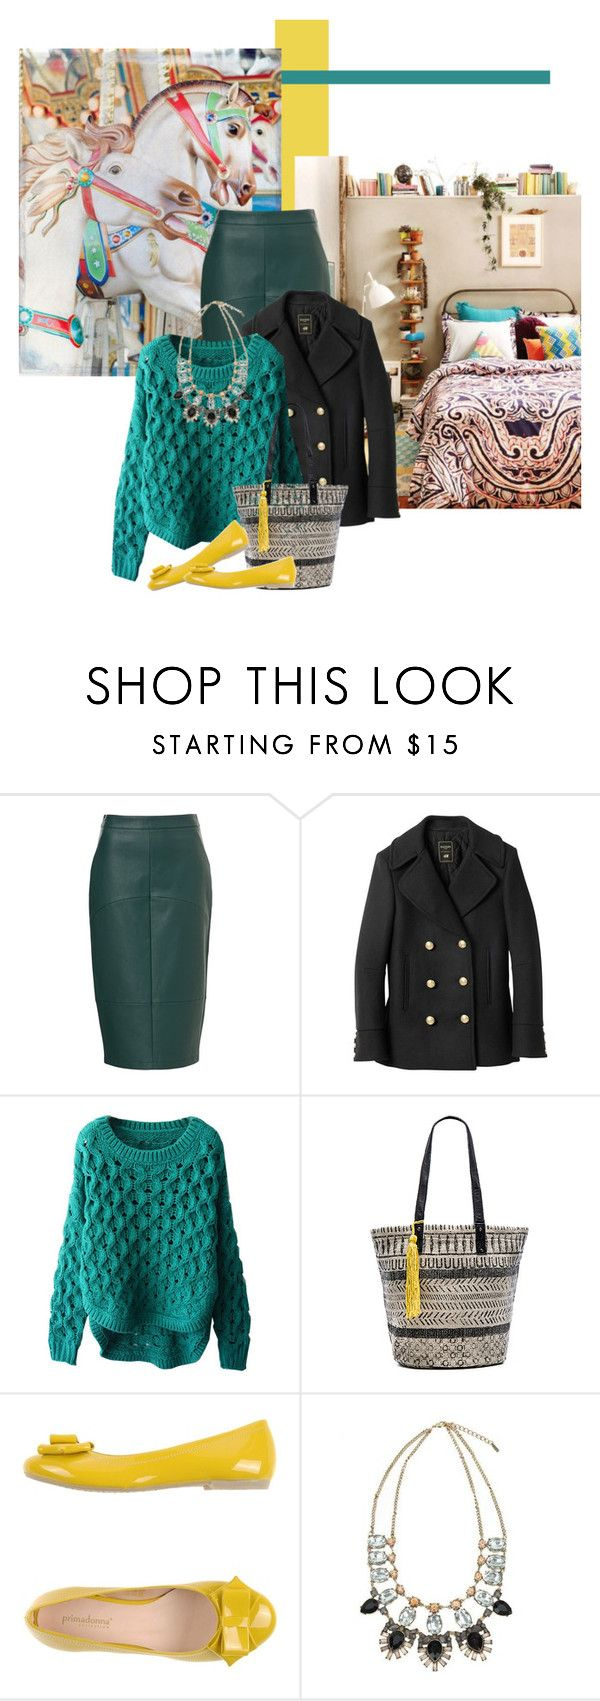 """""""I don't do formal well"""" by redheadlass on Polyvore featuring mode, Balmain, ále by Alessandra en PrimaDonna"""